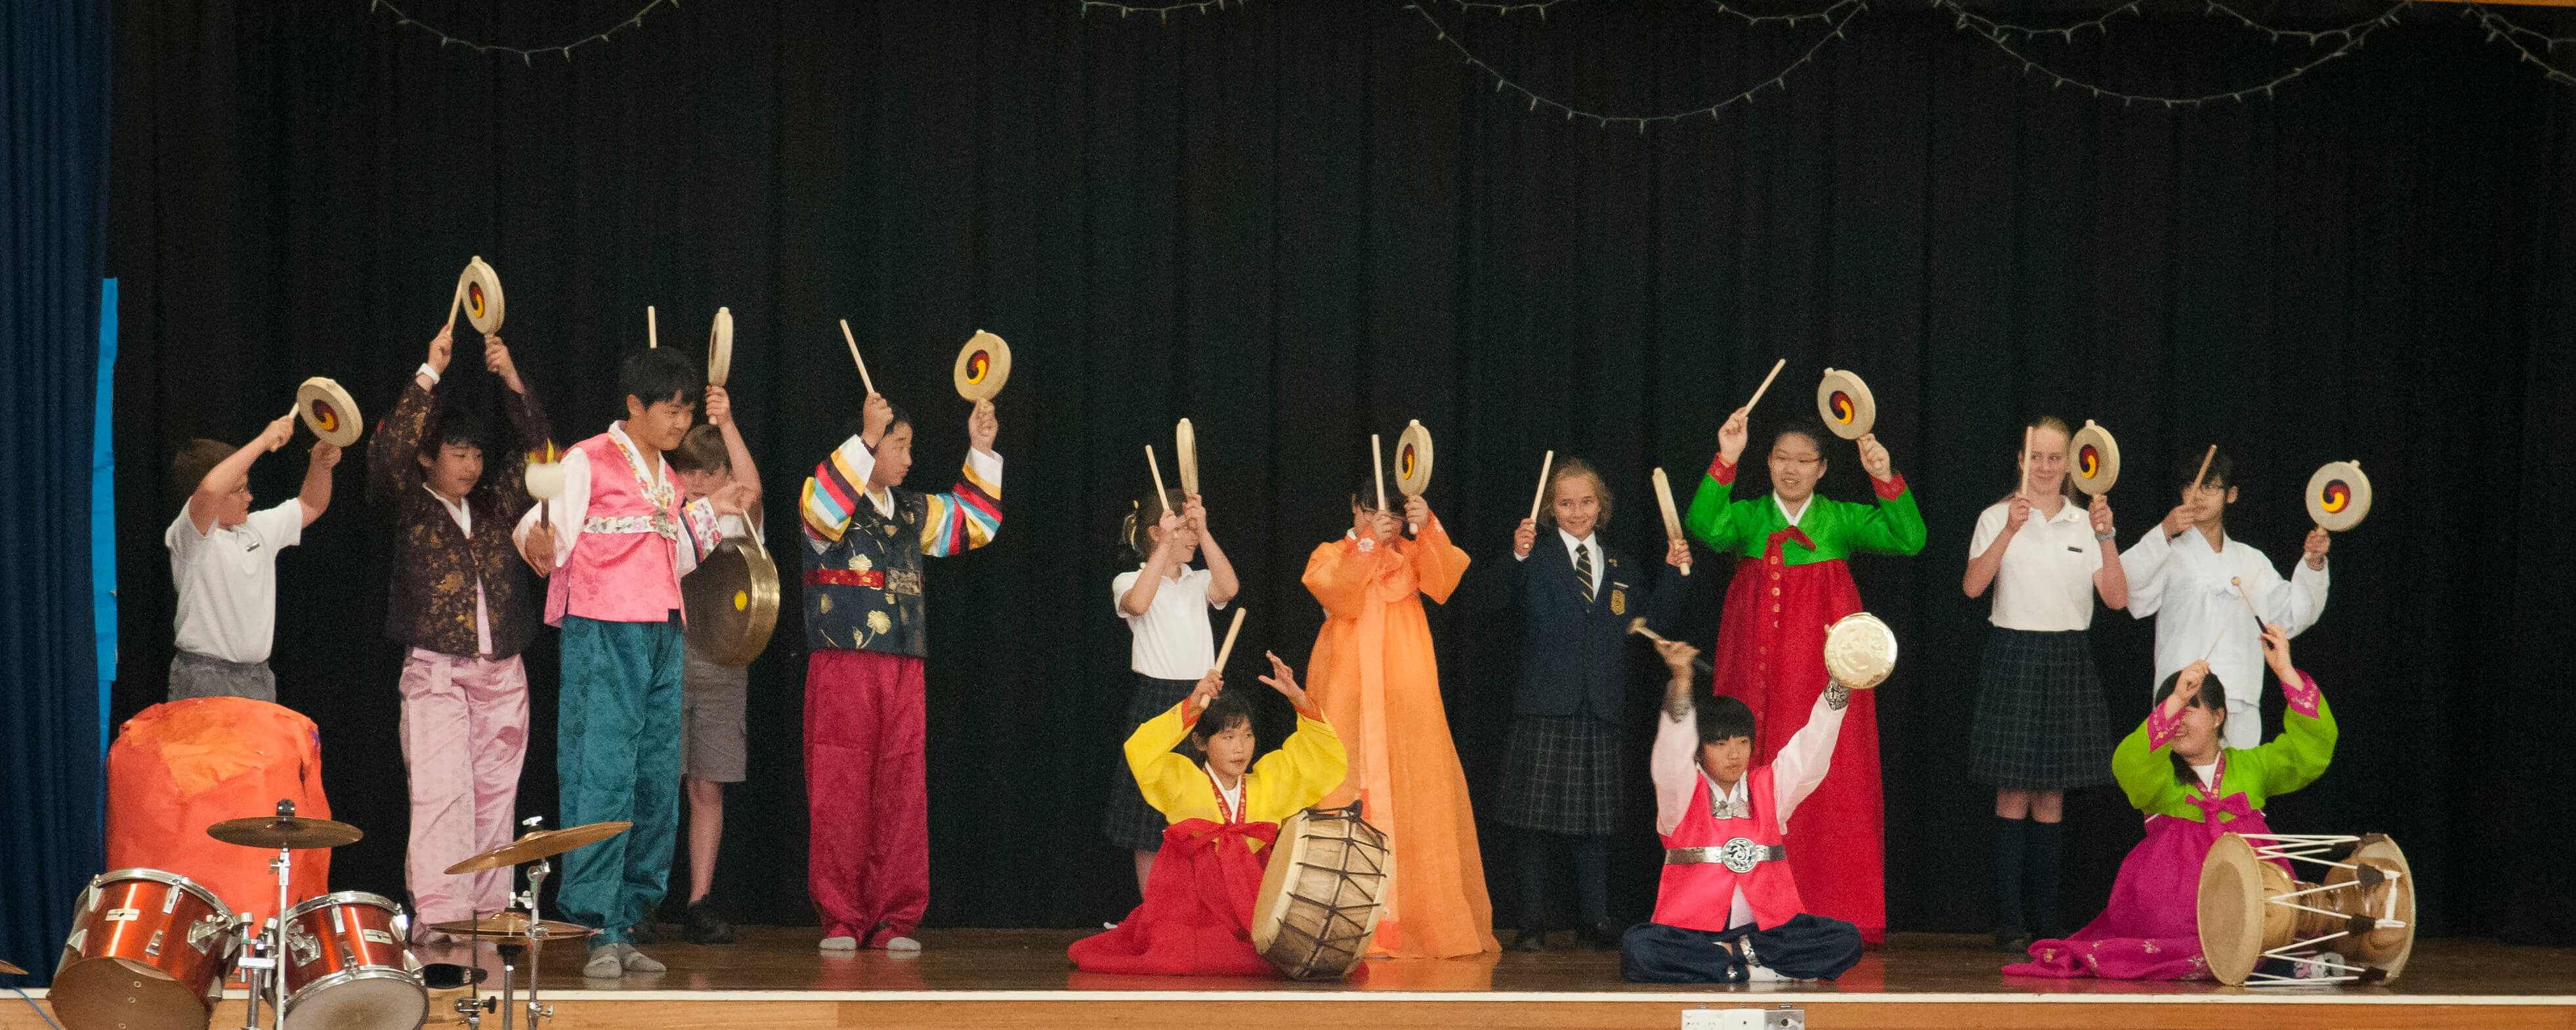 AKC Students playing musical instruments on stage